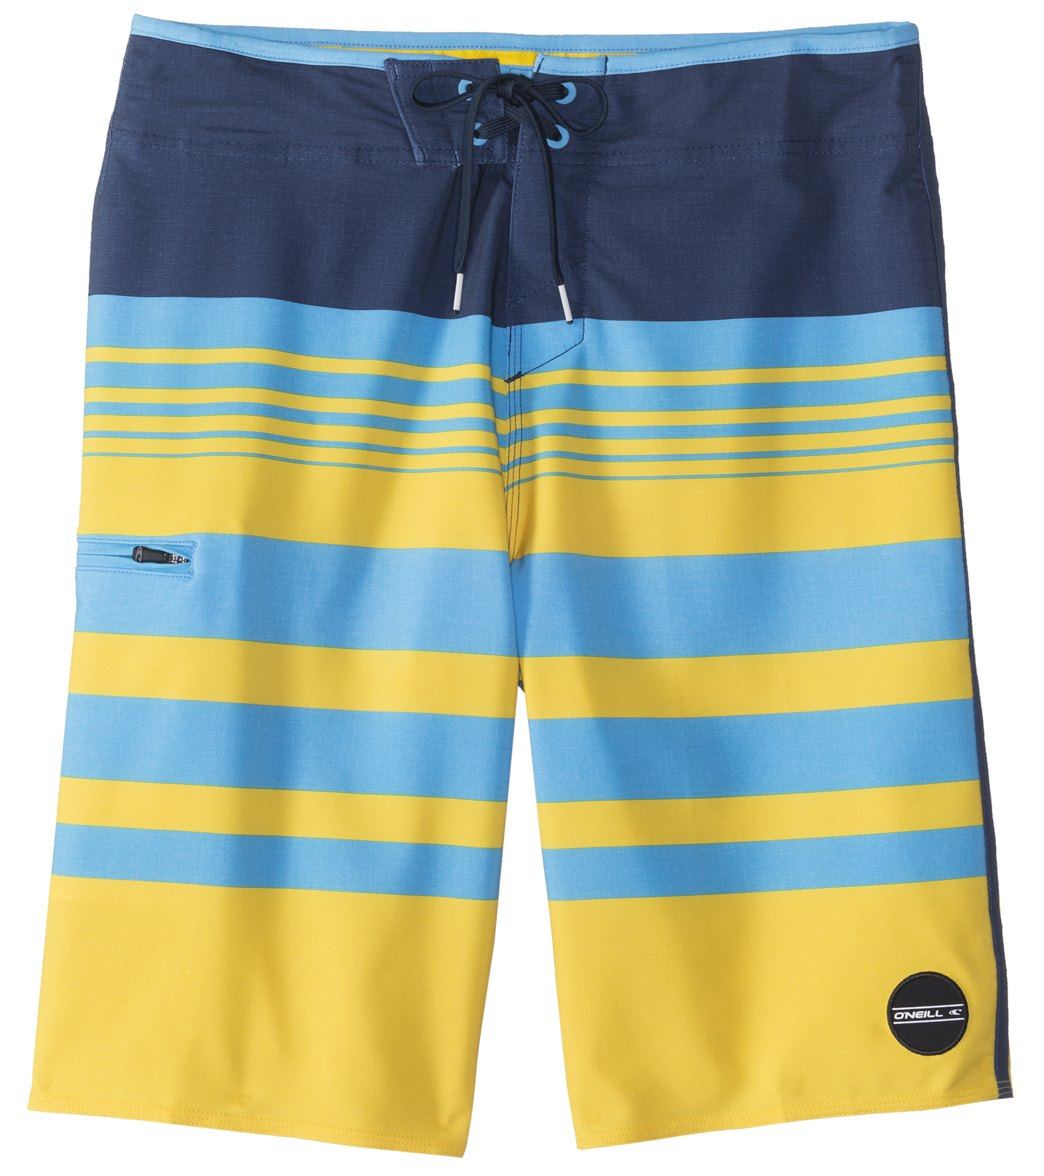 ONeill Mens Hyperfreak Heist Boardshort at SwimOutletcom  Free Shipping